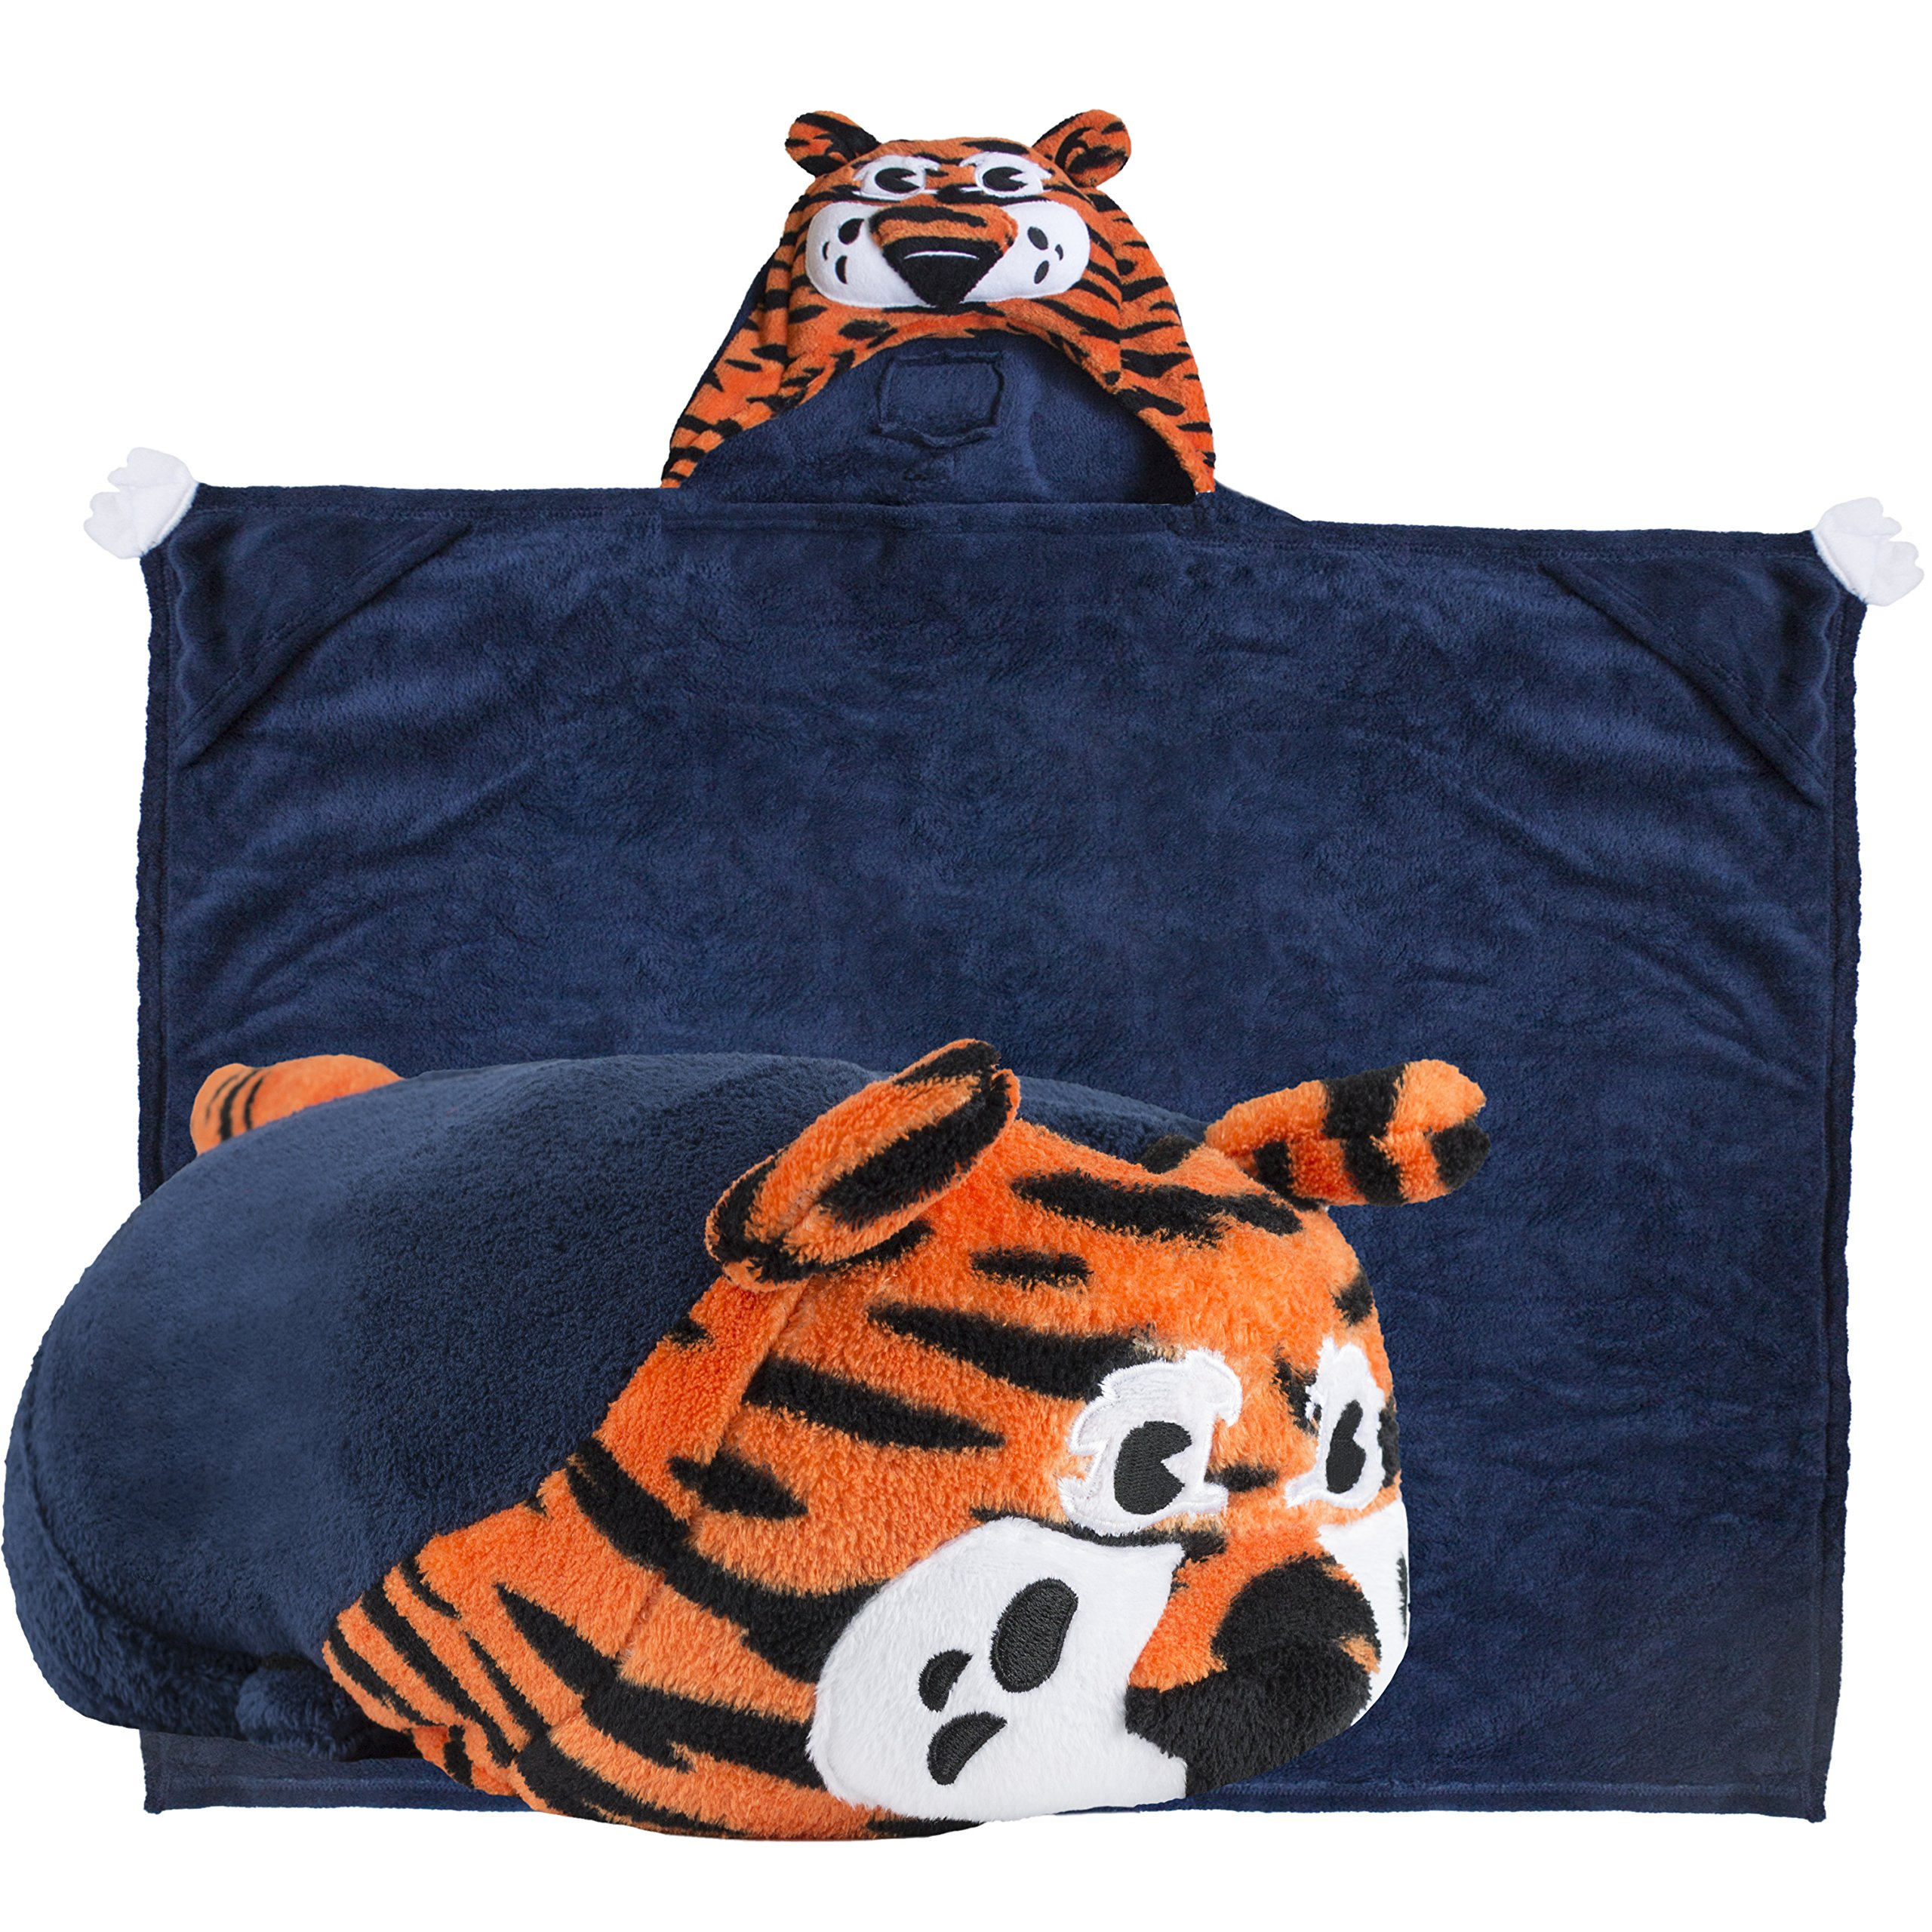 Comfy Critters Stuffed Animal Blanket - College Mascot, Auburn University 'Aubie The Tiger' - Kids Huggable Pillow and Blanket Perfect for The Big Game, Tailgating, Pretend Play, and Much More. by Comfy Critters